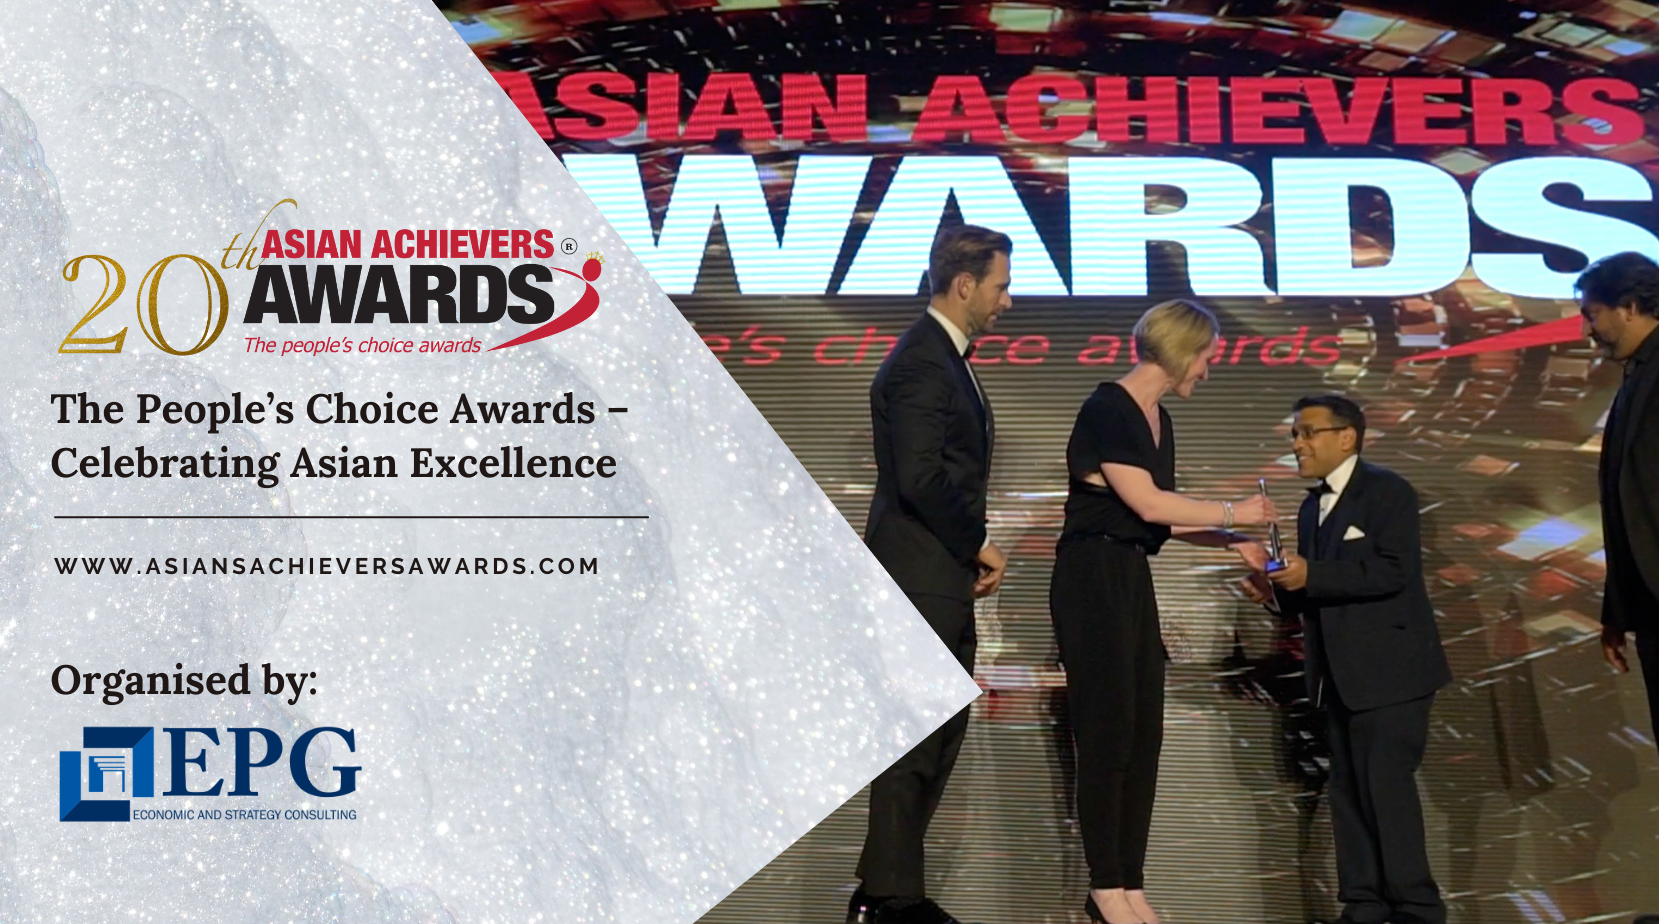 Asian Achievers Awards - Organised by EPG